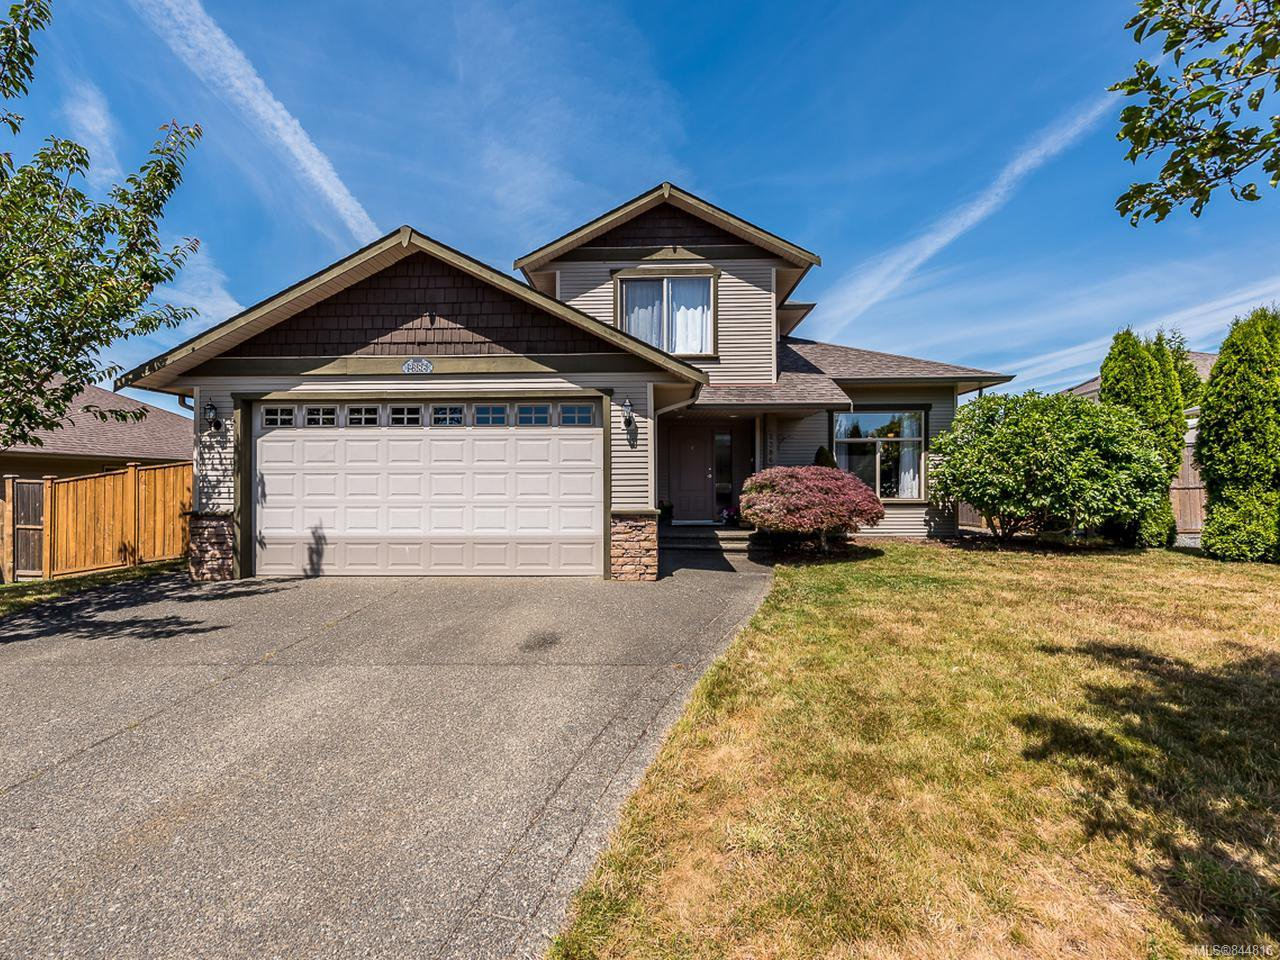 Main Photo: 2386 Inverclyde Way in COURTENAY: CV Courtenay East Single Family Detached for sale (Comox Valley)  : MLS®# 844816